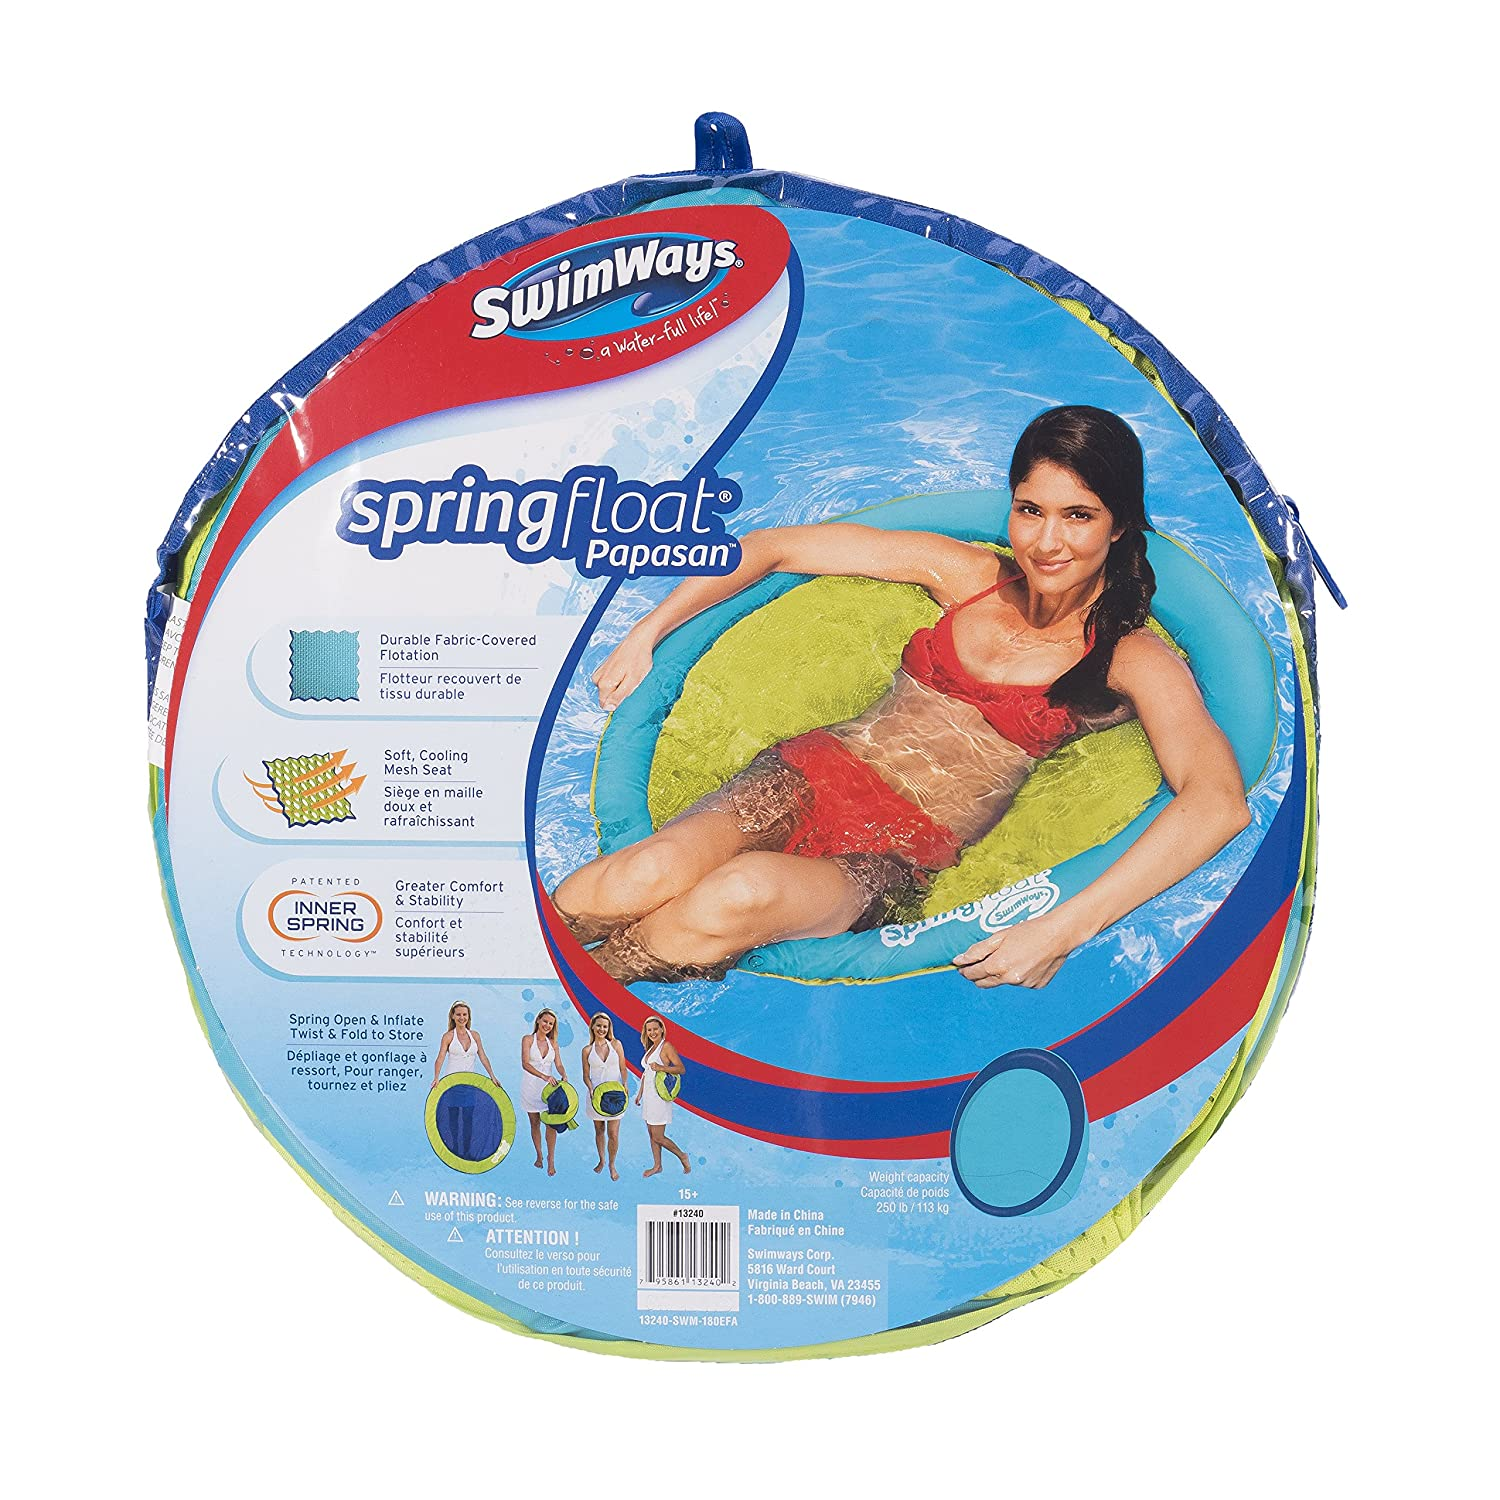 Amazon.com: Swimways Spring Float Papasan Pool Chair, Light Blue ...